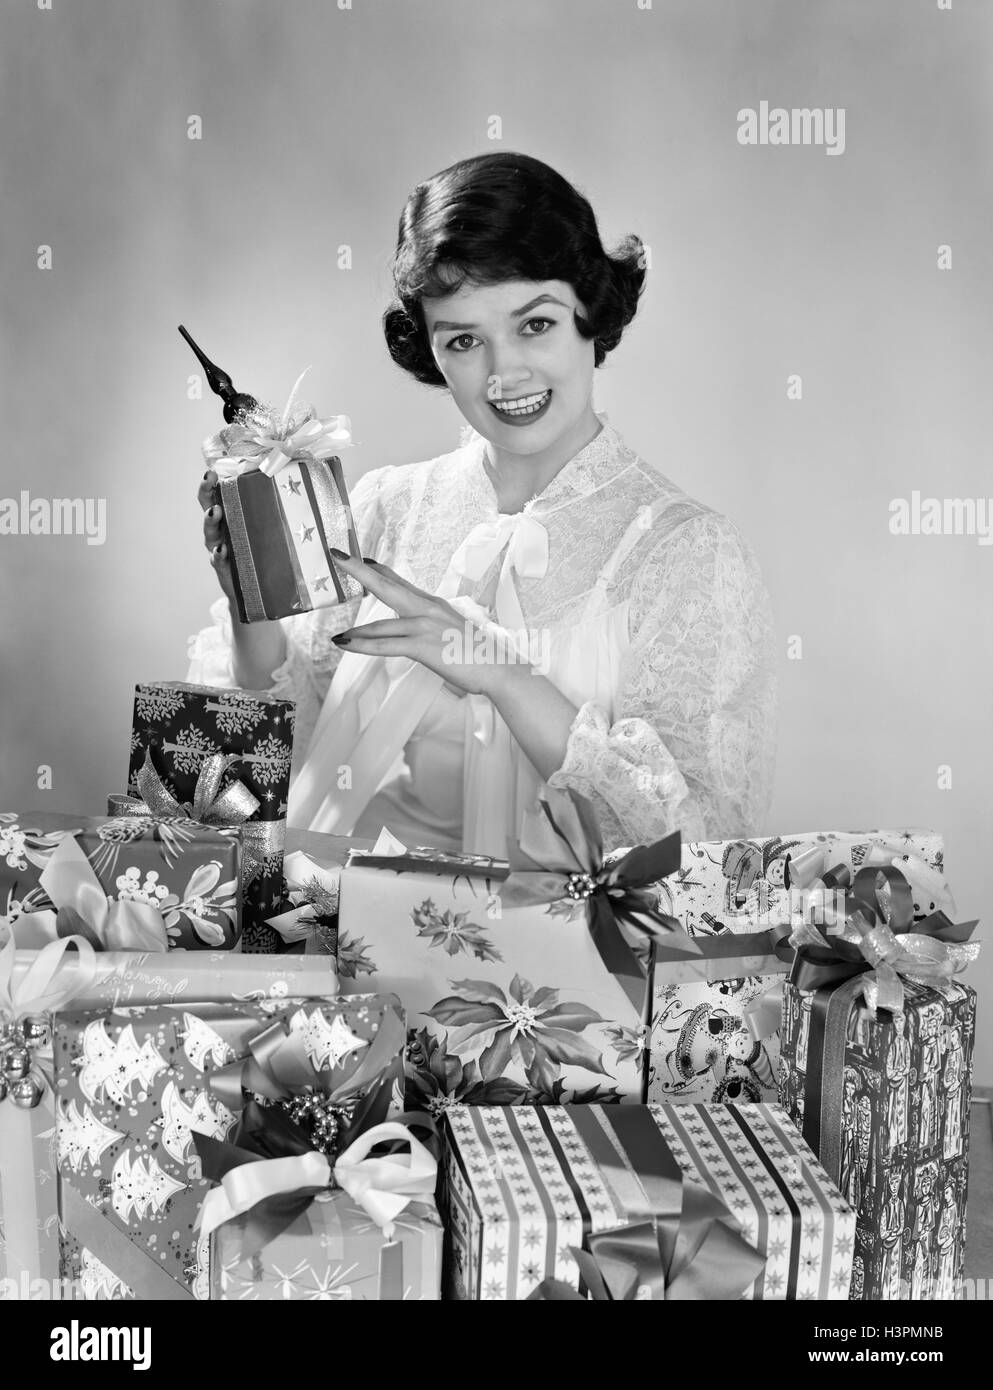 1950s SMILING WOMAN WEARING NIGHTGOWN CHRISTMAS MORNING SITTING BY PILE OF CHRISTMAS PRESENTS HOLDING ONE PRESENT - Stock Image